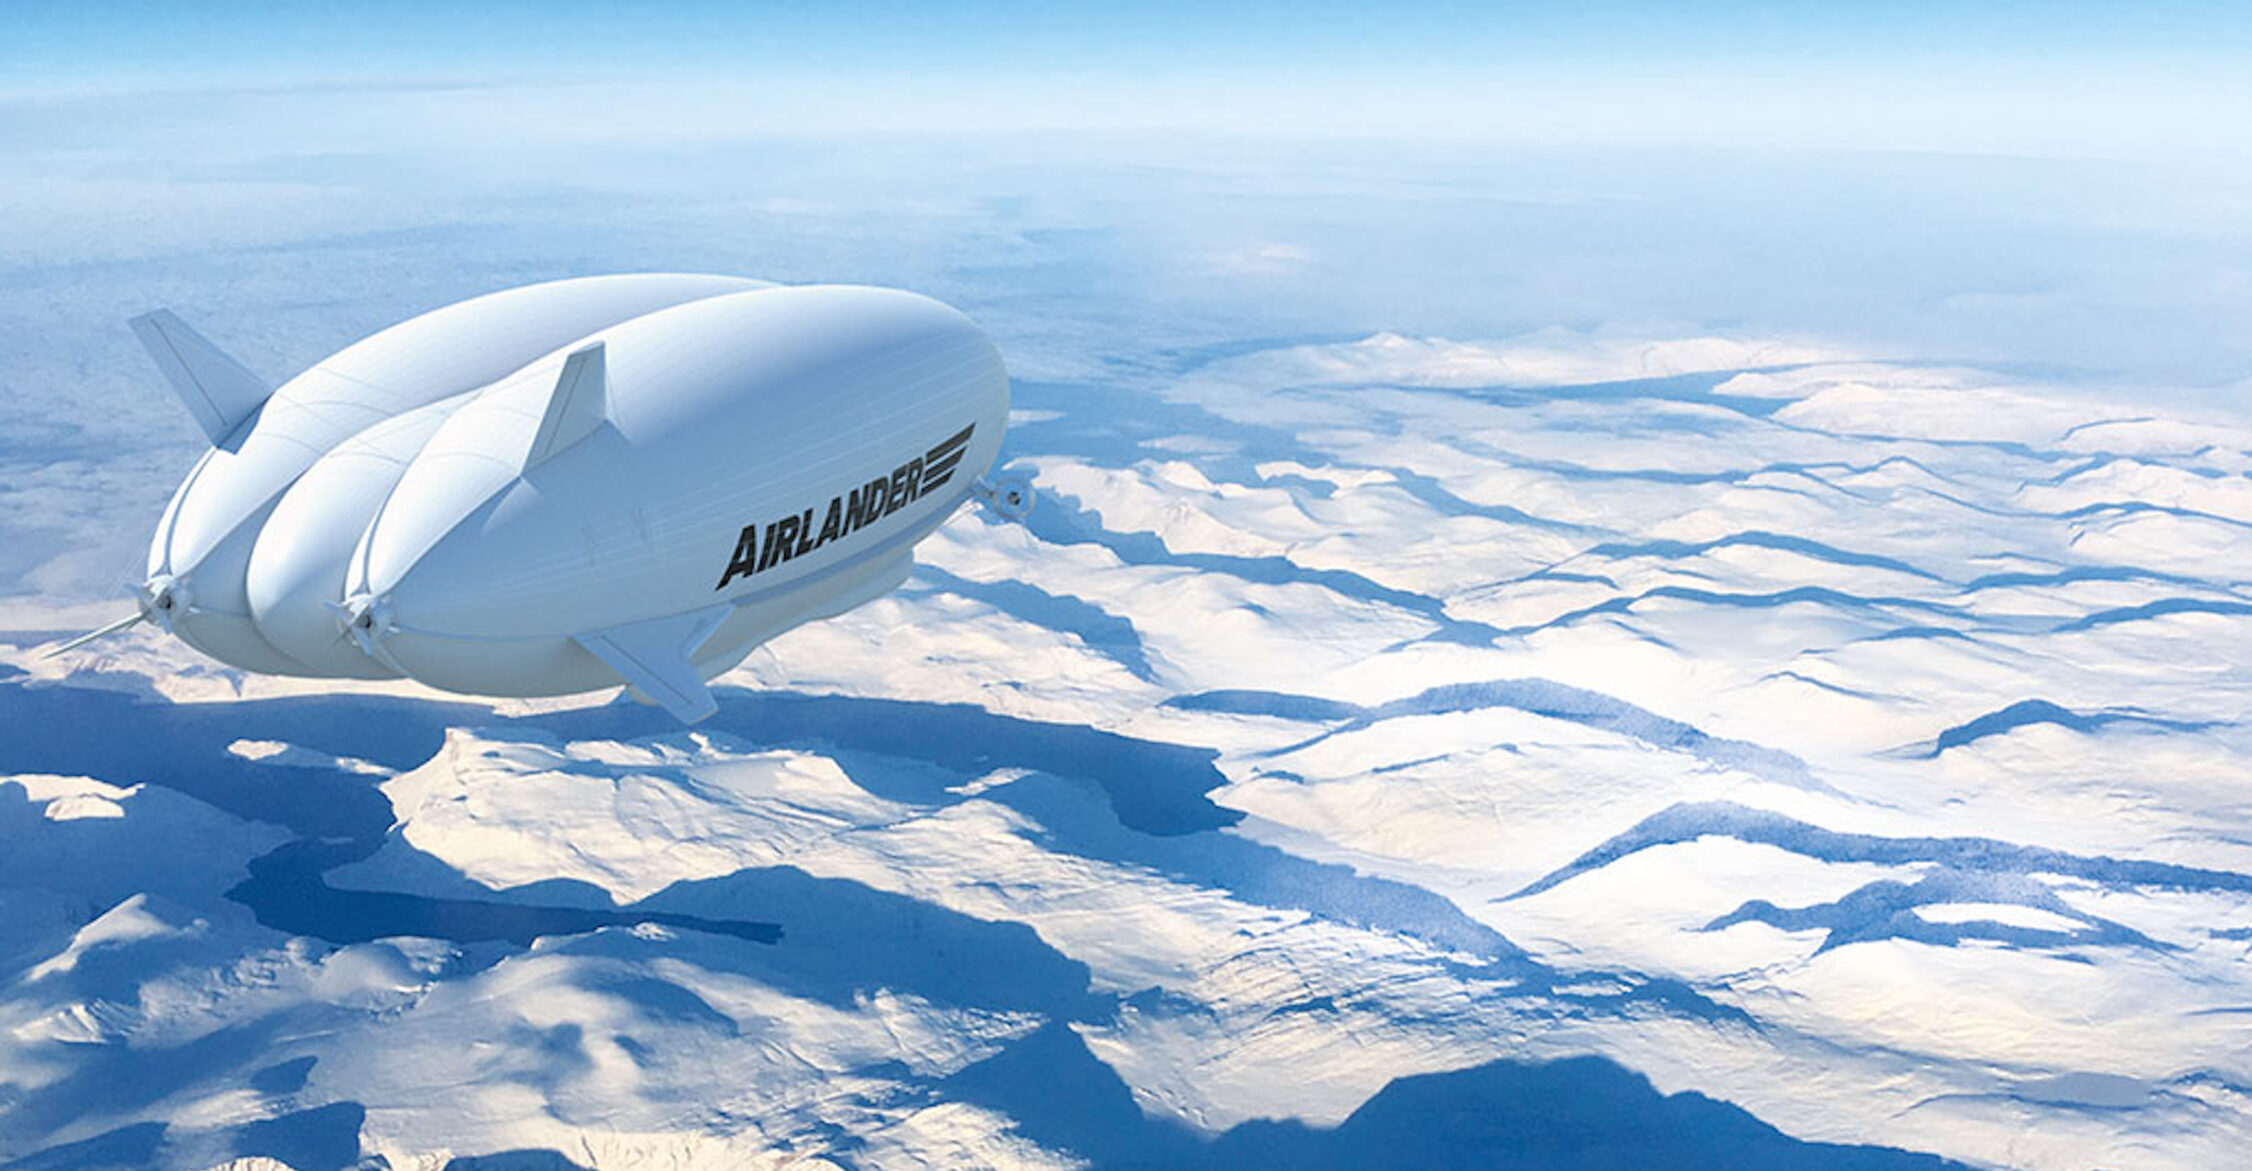 Airlander flying above snow